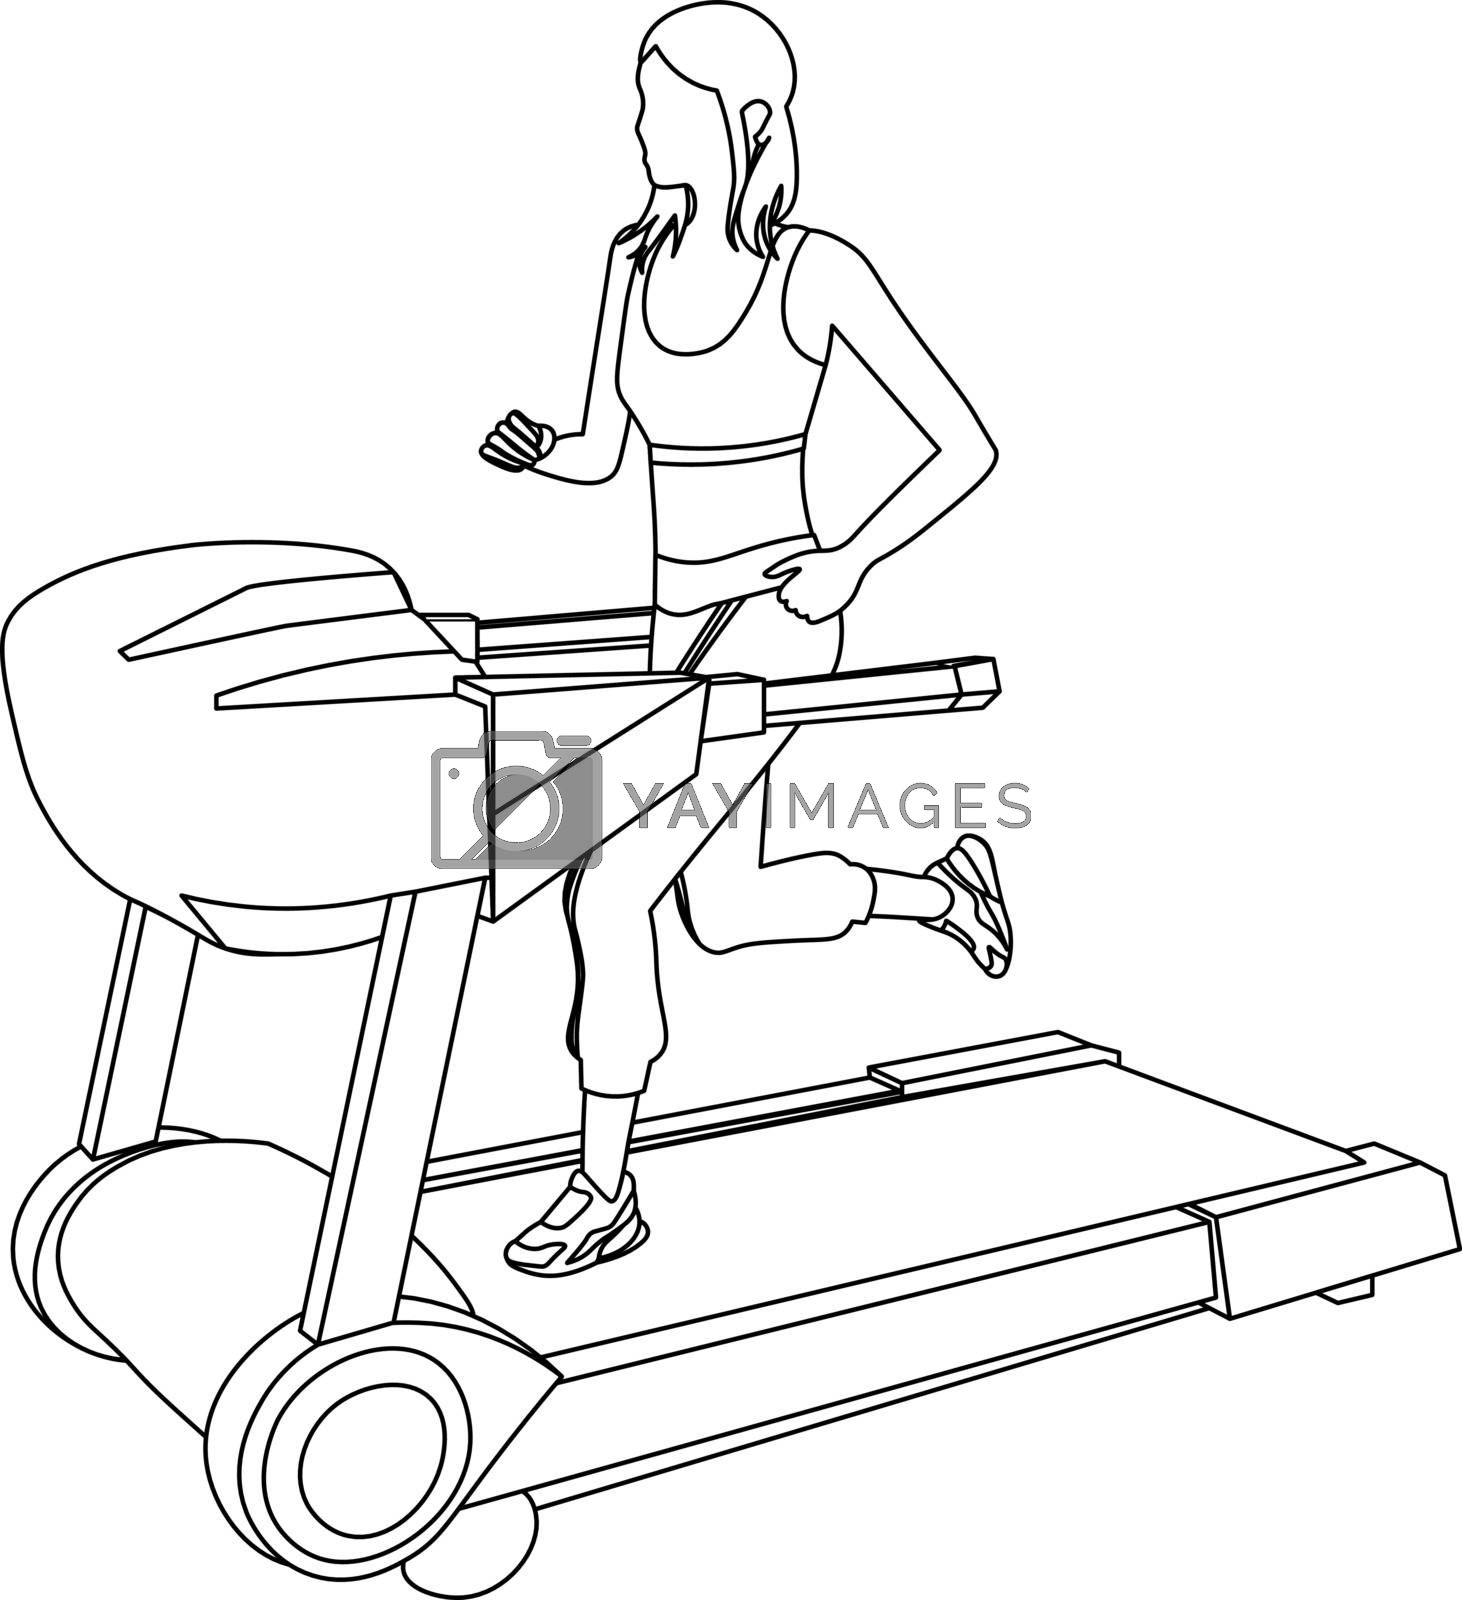 sketch line art of faceless girl with ponytails running on the treadmill